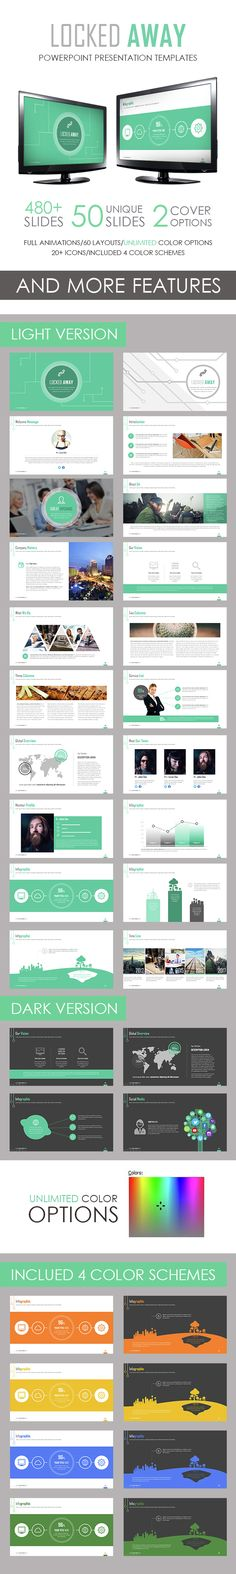 Reason Powerpoint Presentation  Presentation Templates